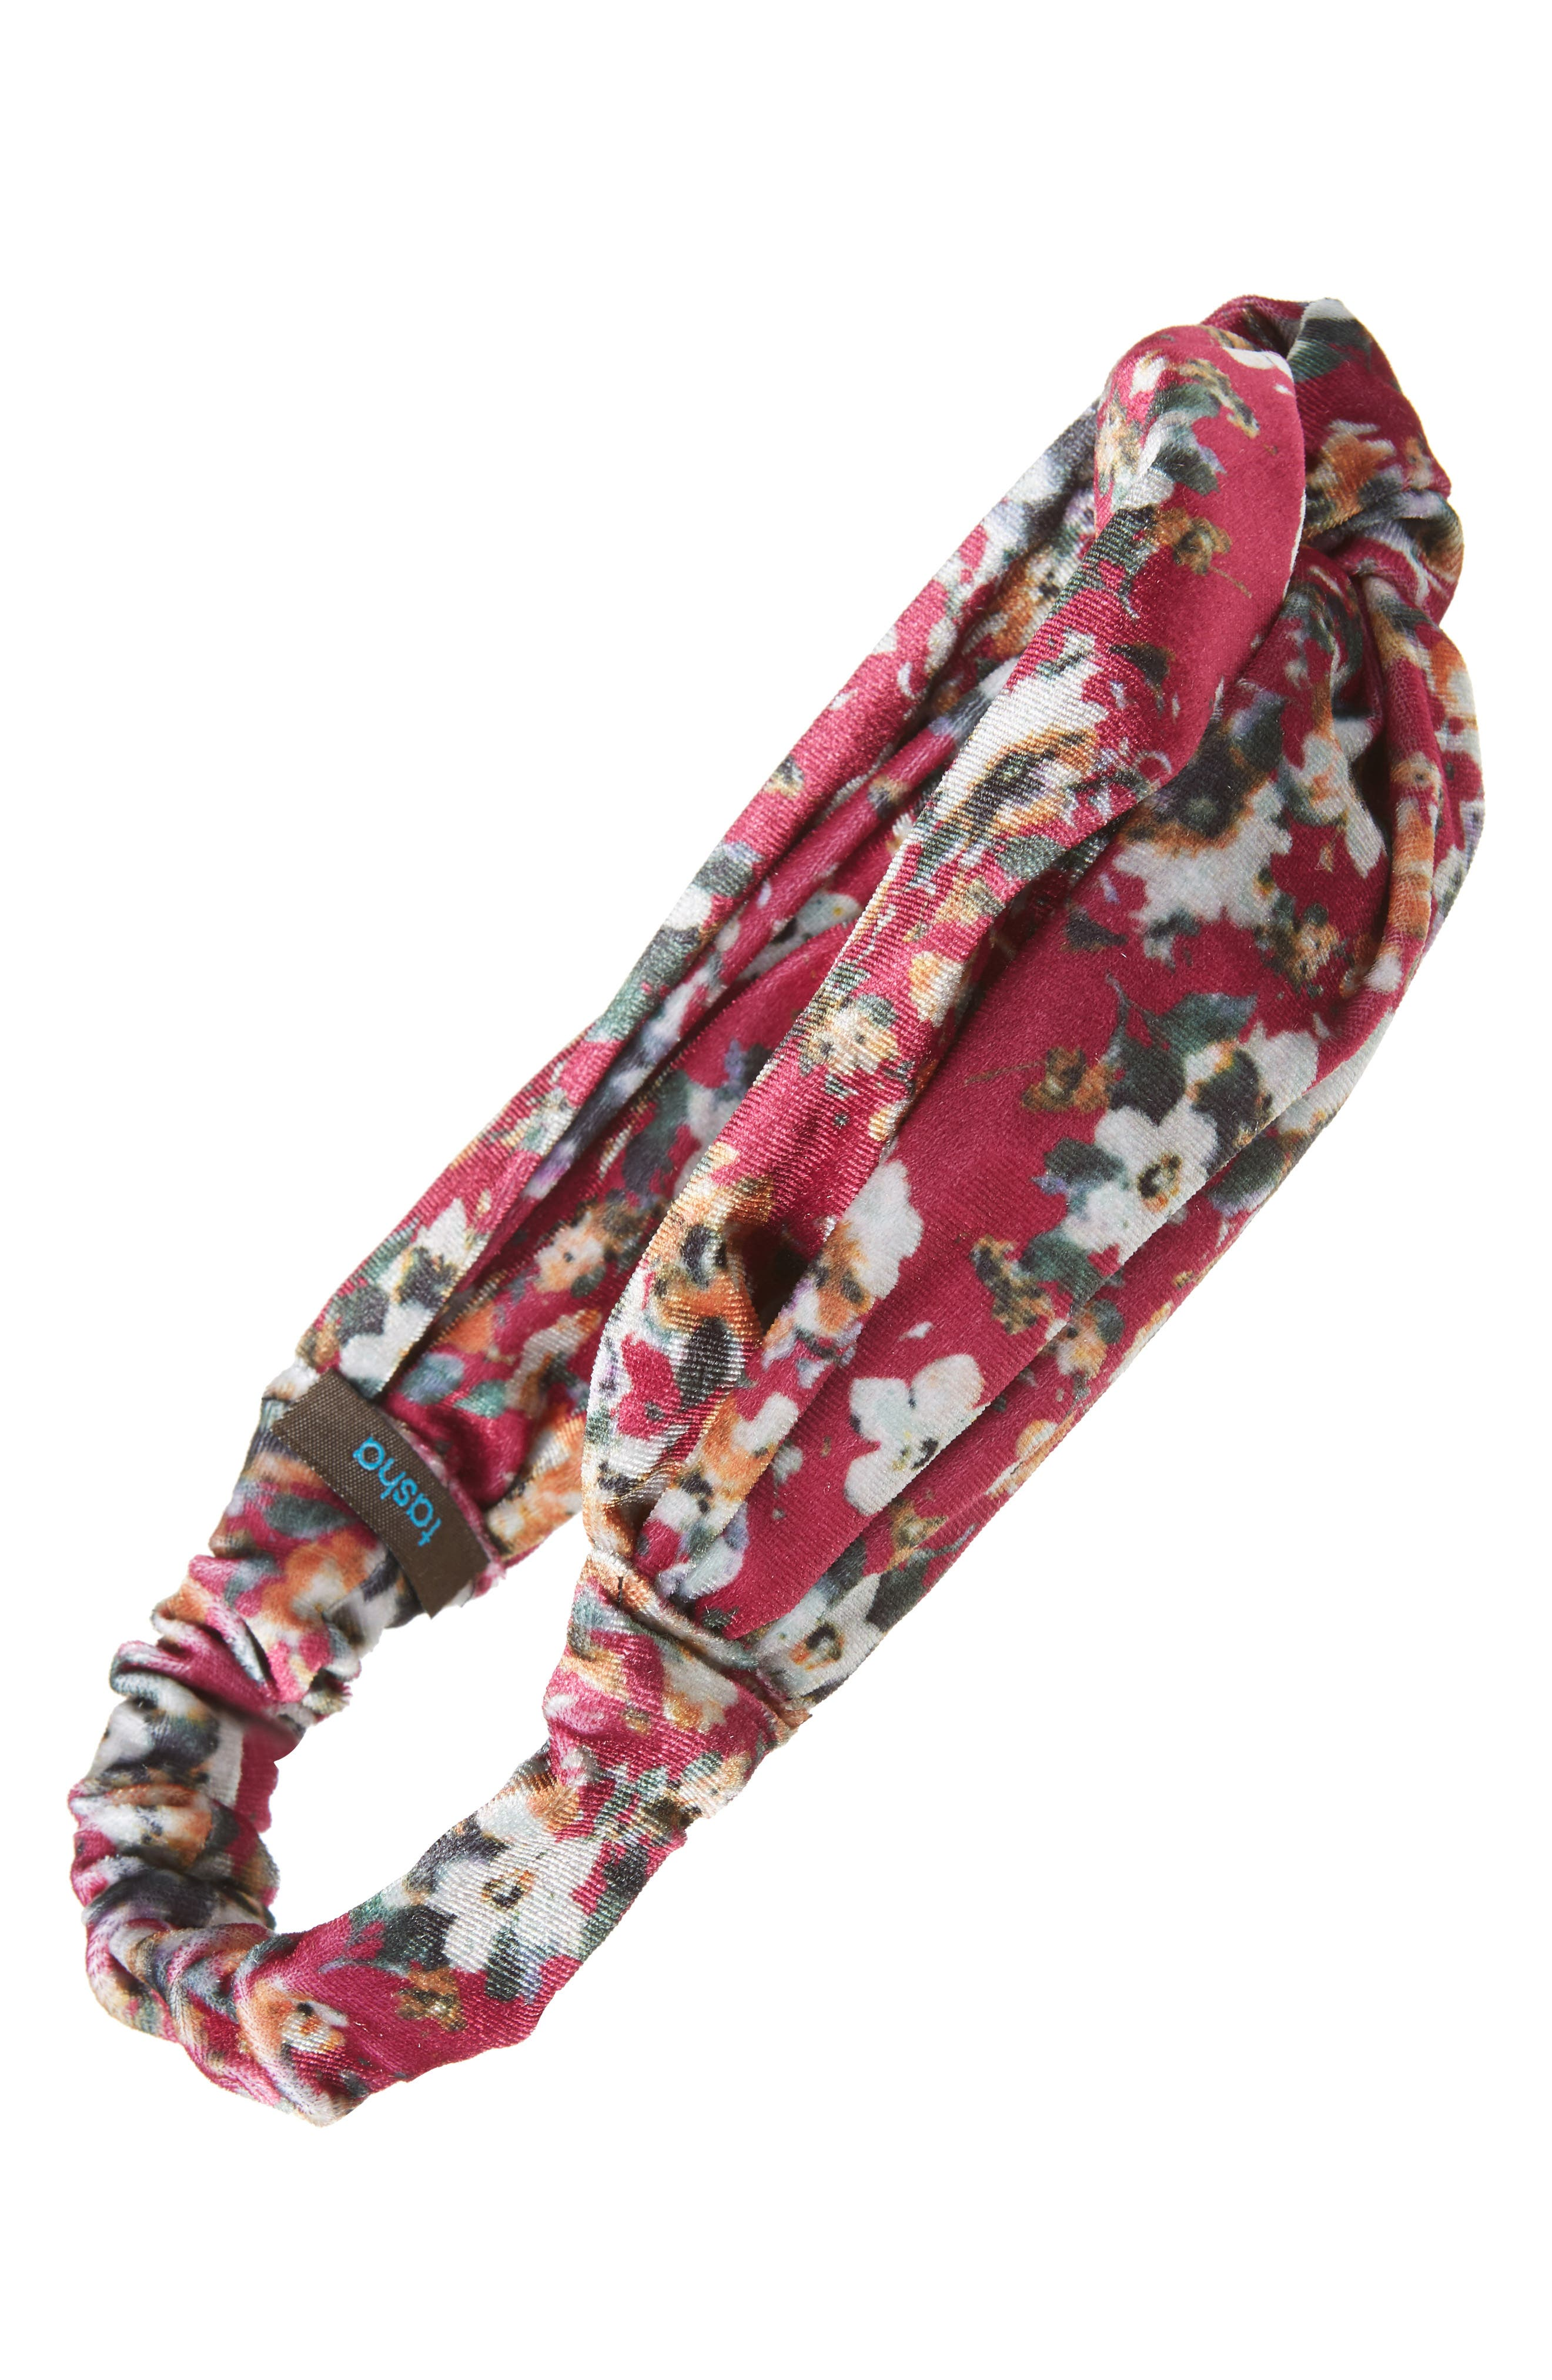 TASHA, Floral Velvet Knotted Head Wrap, Main thumbnail 1, color, RED